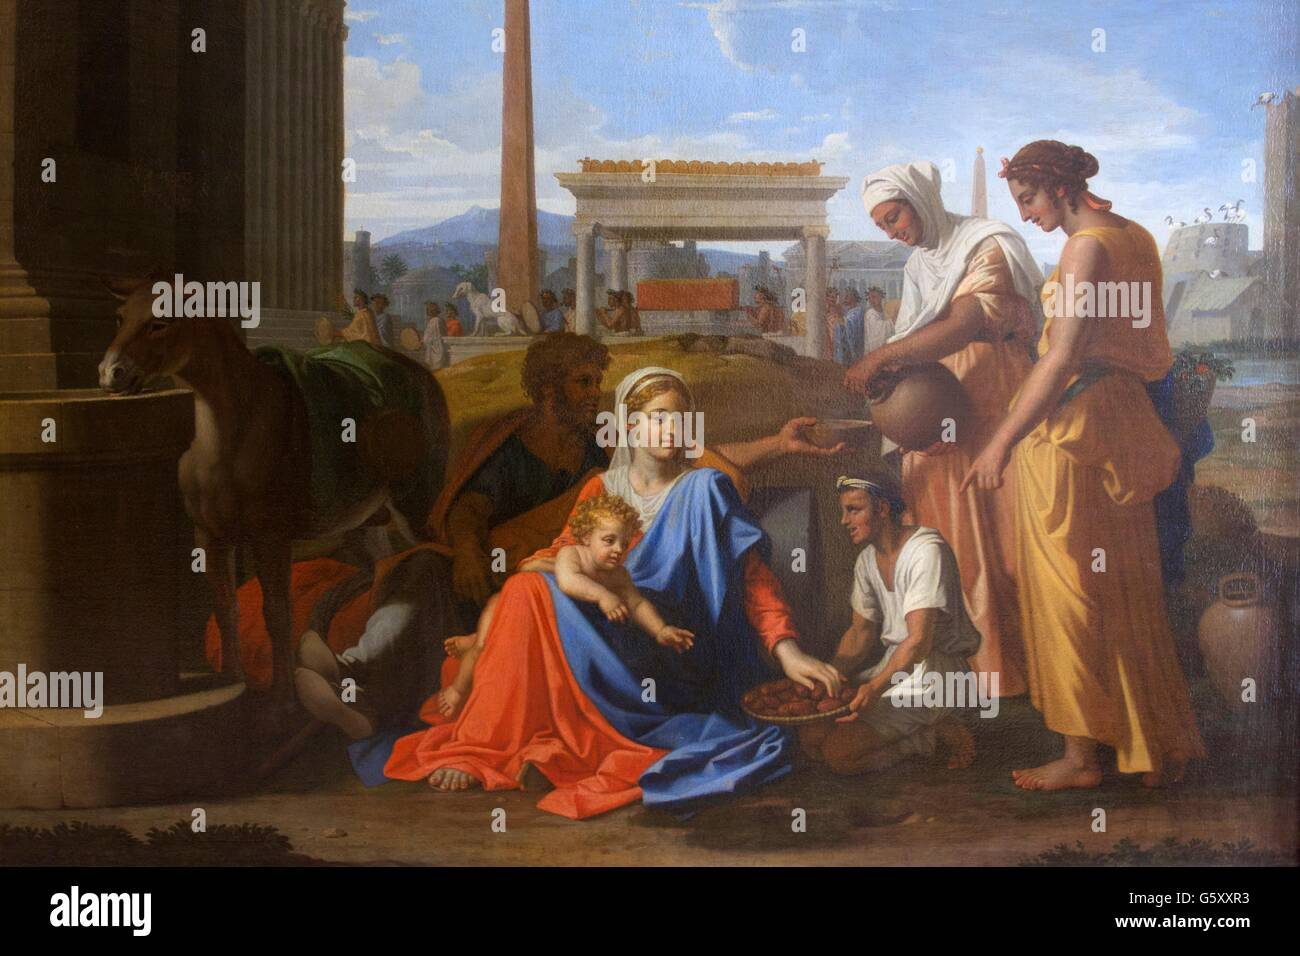 Holy Family in Egypt, Nicolas Poussin, 1657,  Hermitage State Museum, Saint Petersburg, Russia - Stock Image